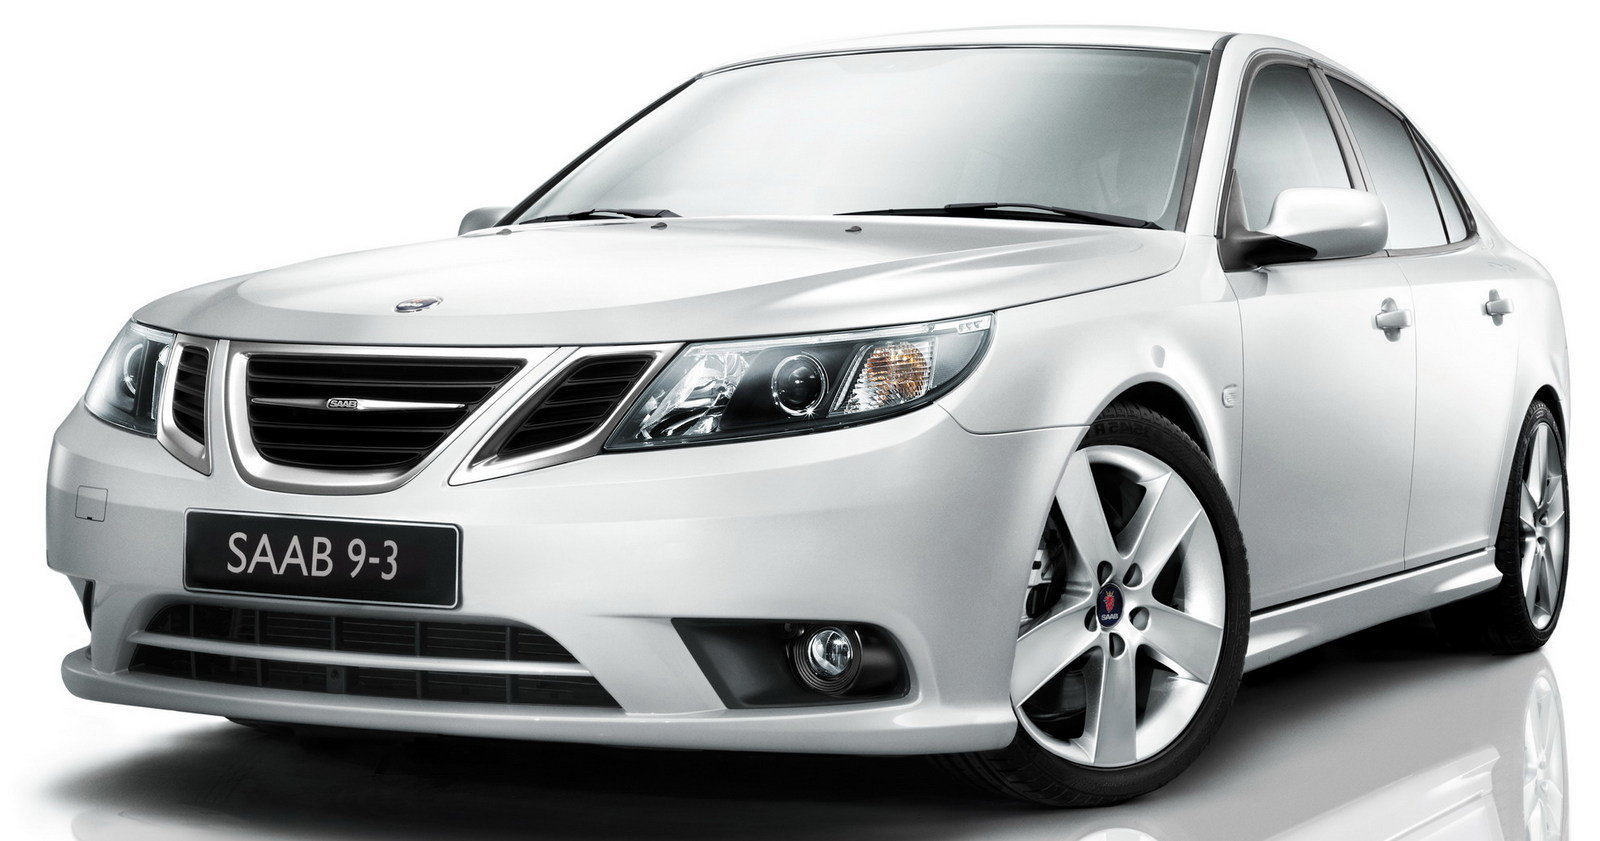 2009 saab 9 3 turbo edition review top speed. Black Bedroom Furniture Sets. Home Design Ideas